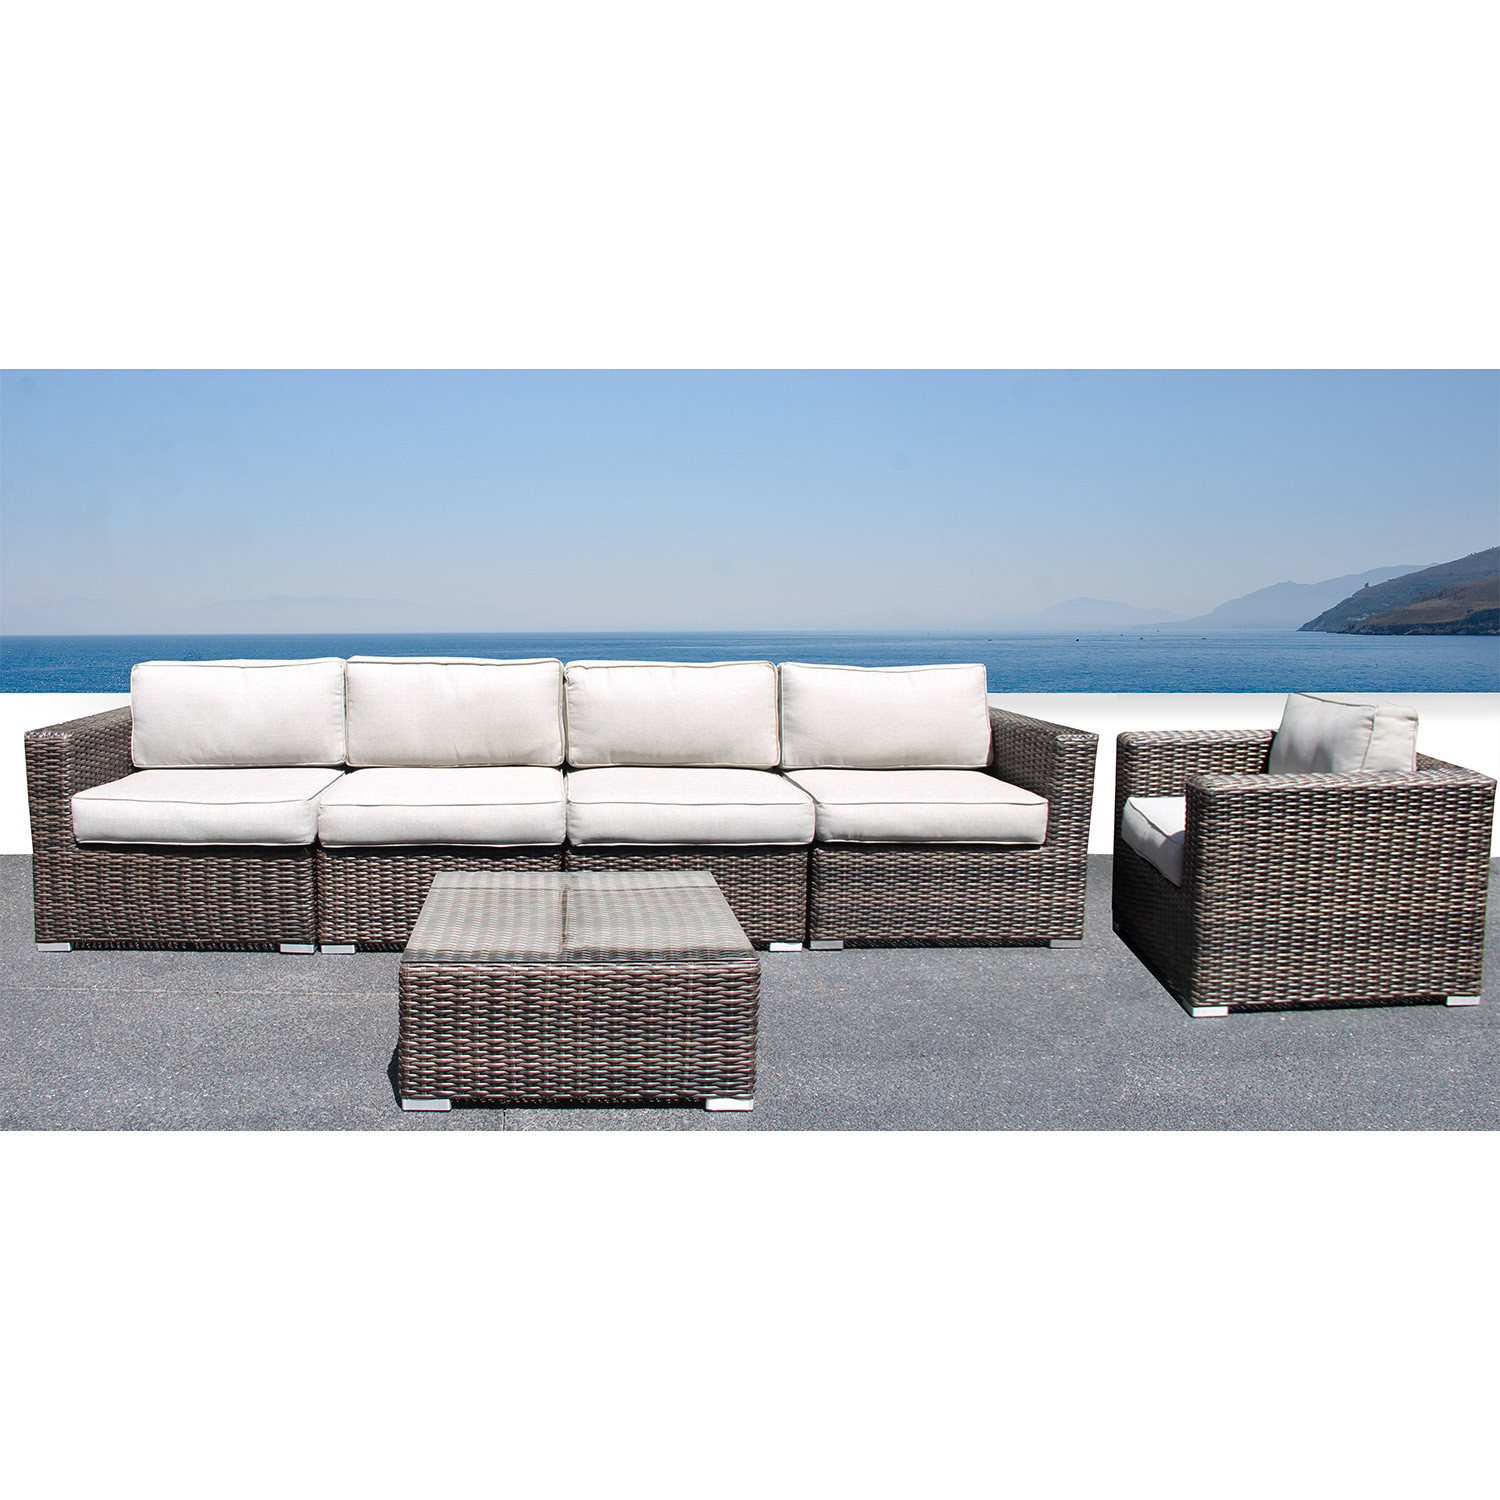 Marbella sofa club 6 piece set century modern touch for Sofa exterior marbella